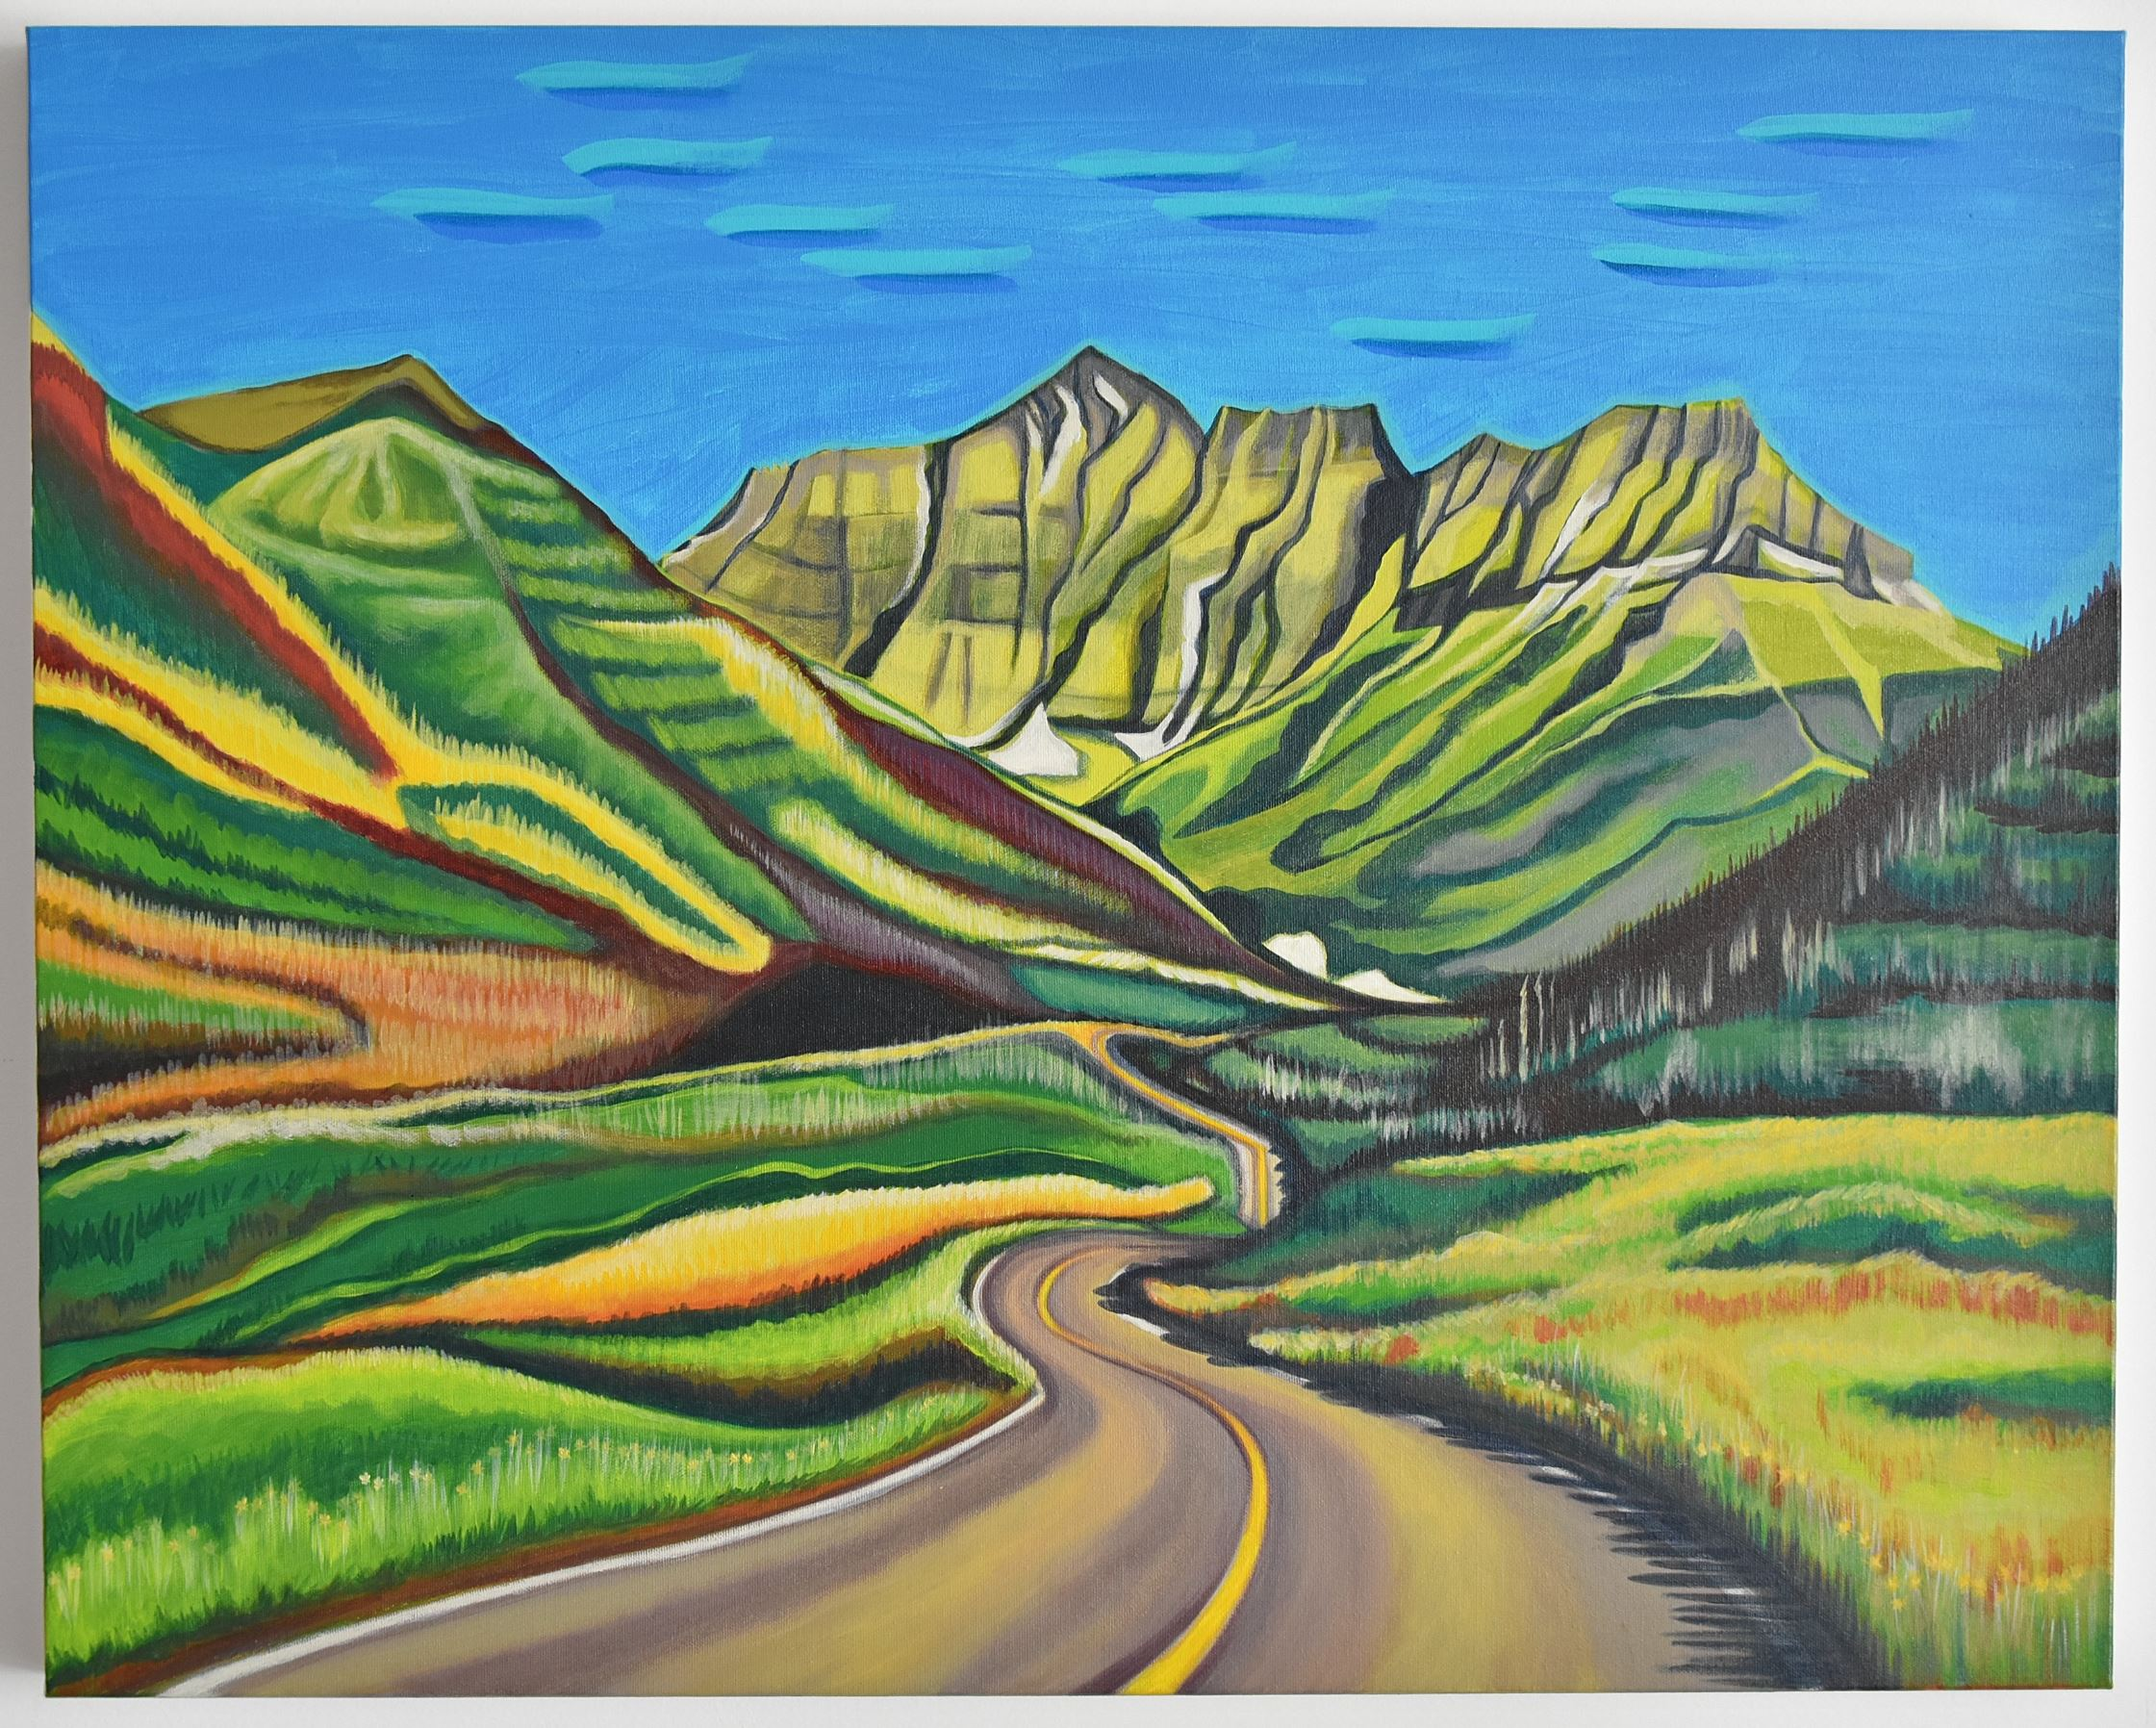 Canadian landscape painting of winding road, prairie, and rocky mountains - Waterton Lakes